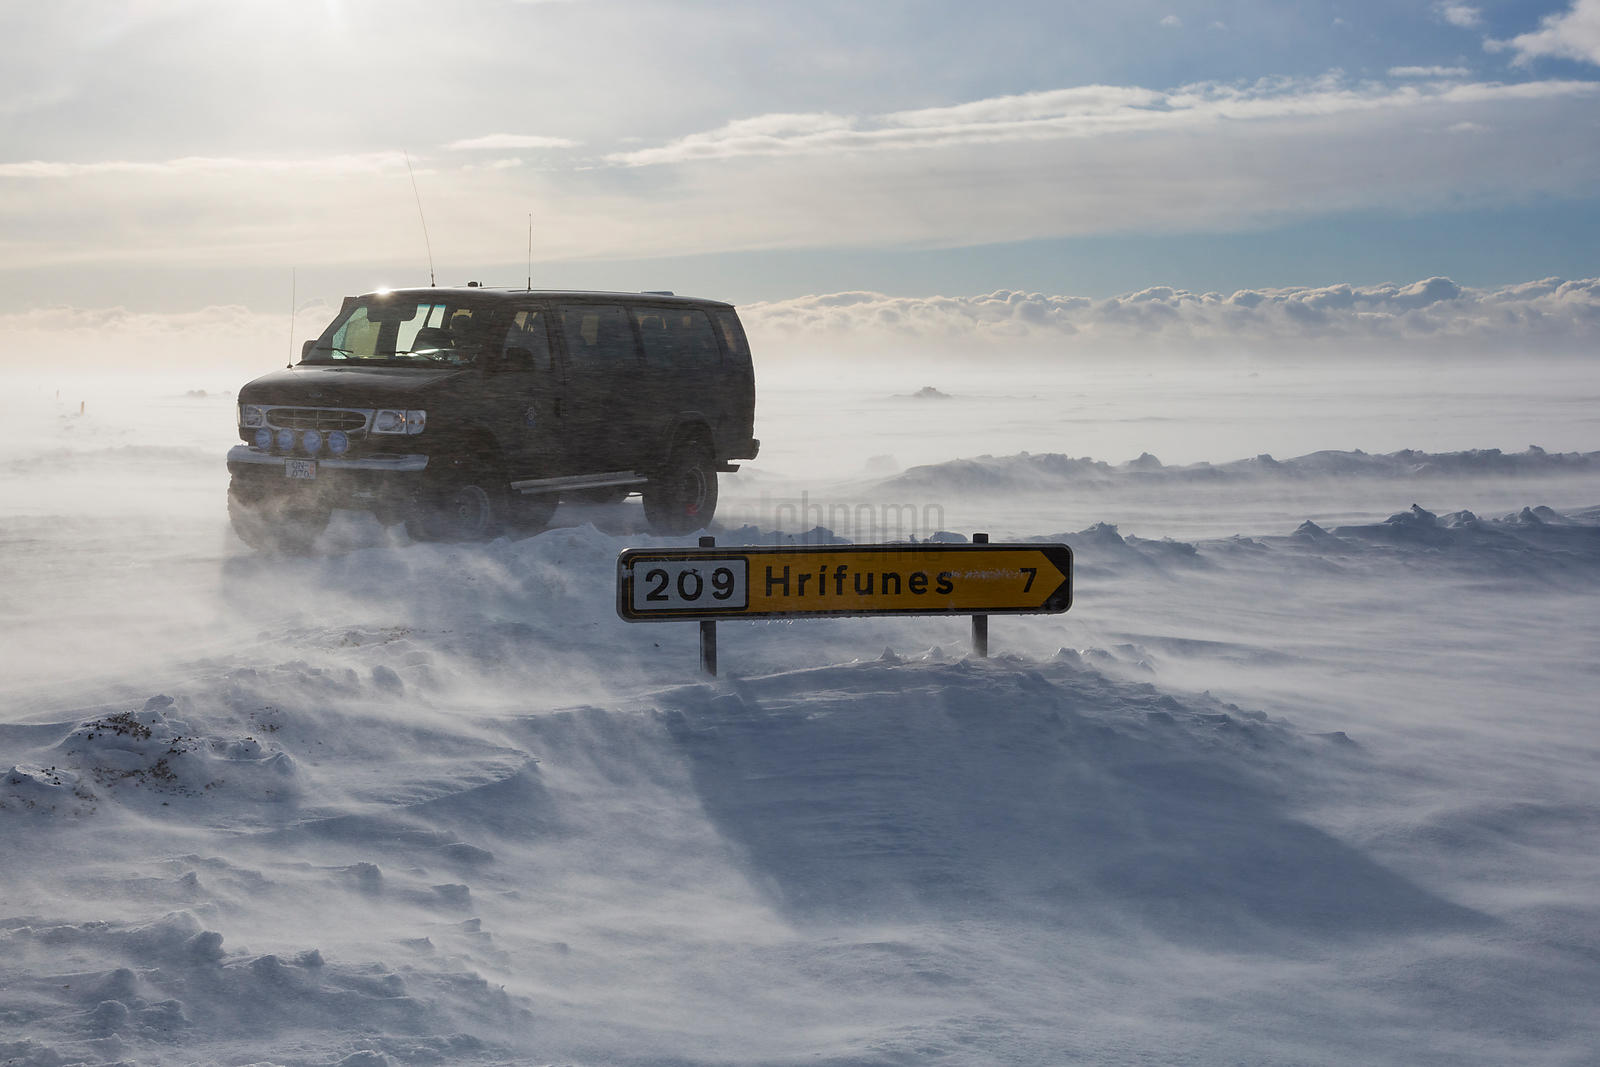 Blizzard Conditions in South East Iceland